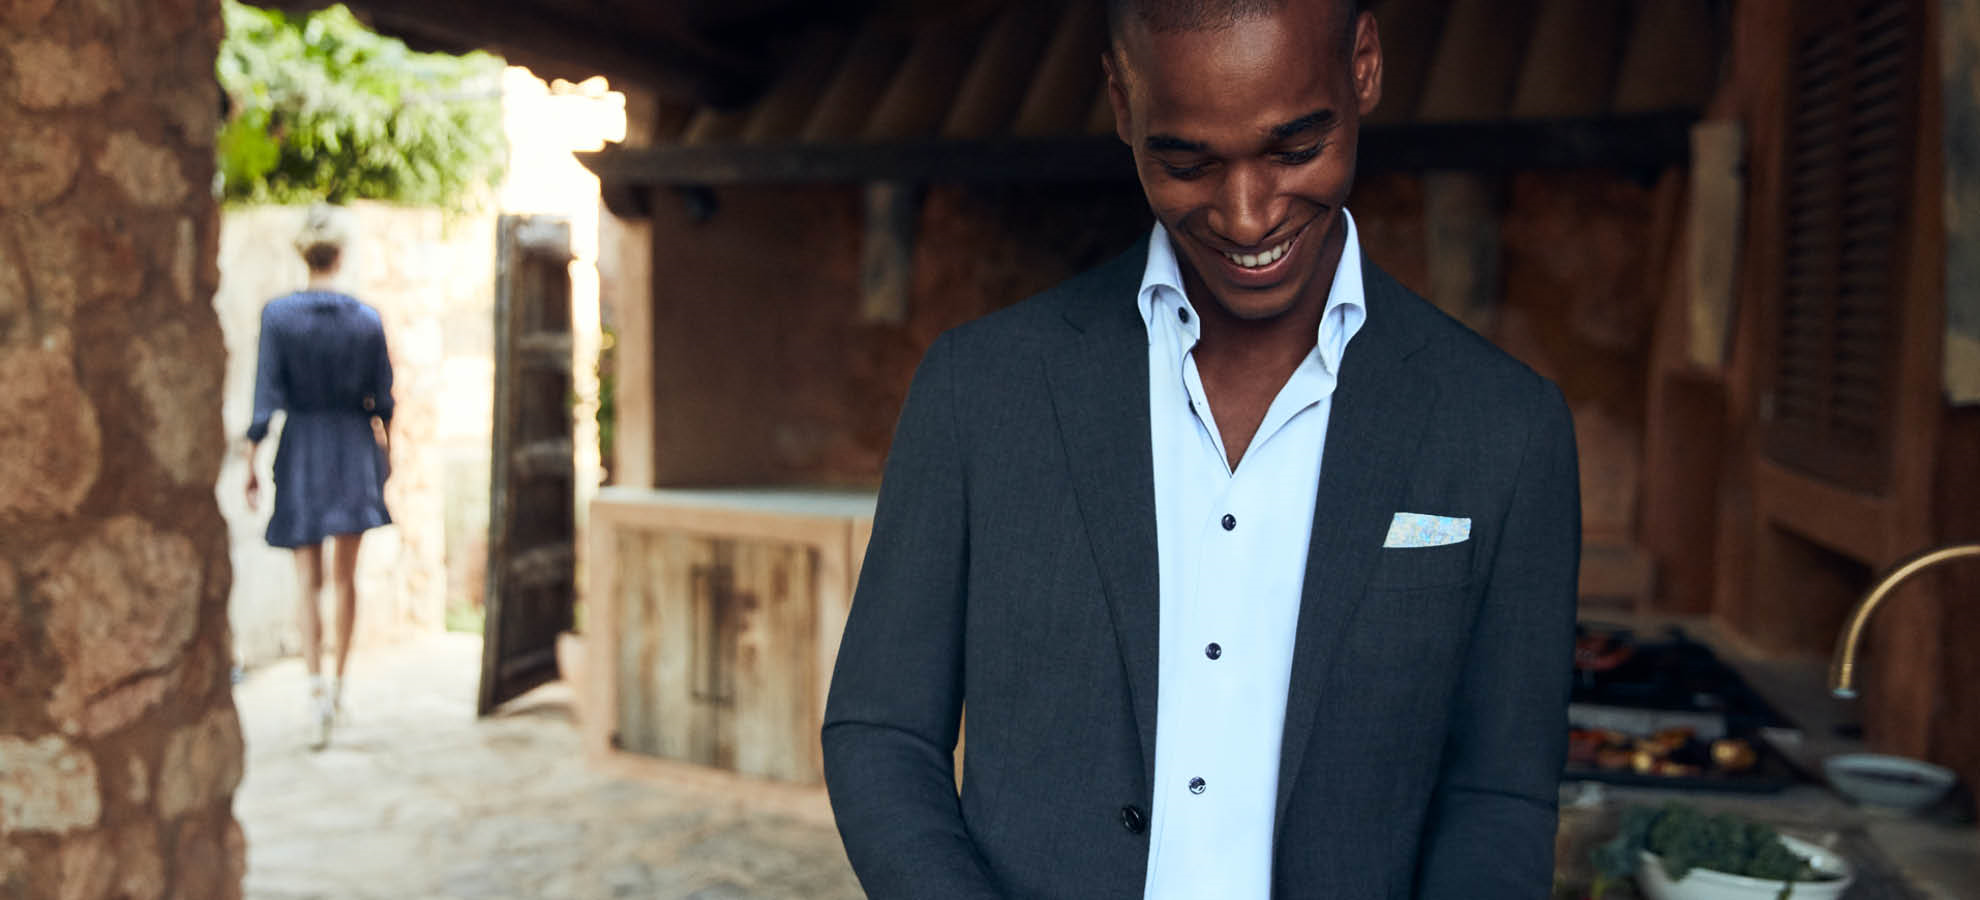 It's summer and we urge you to embrace Linen